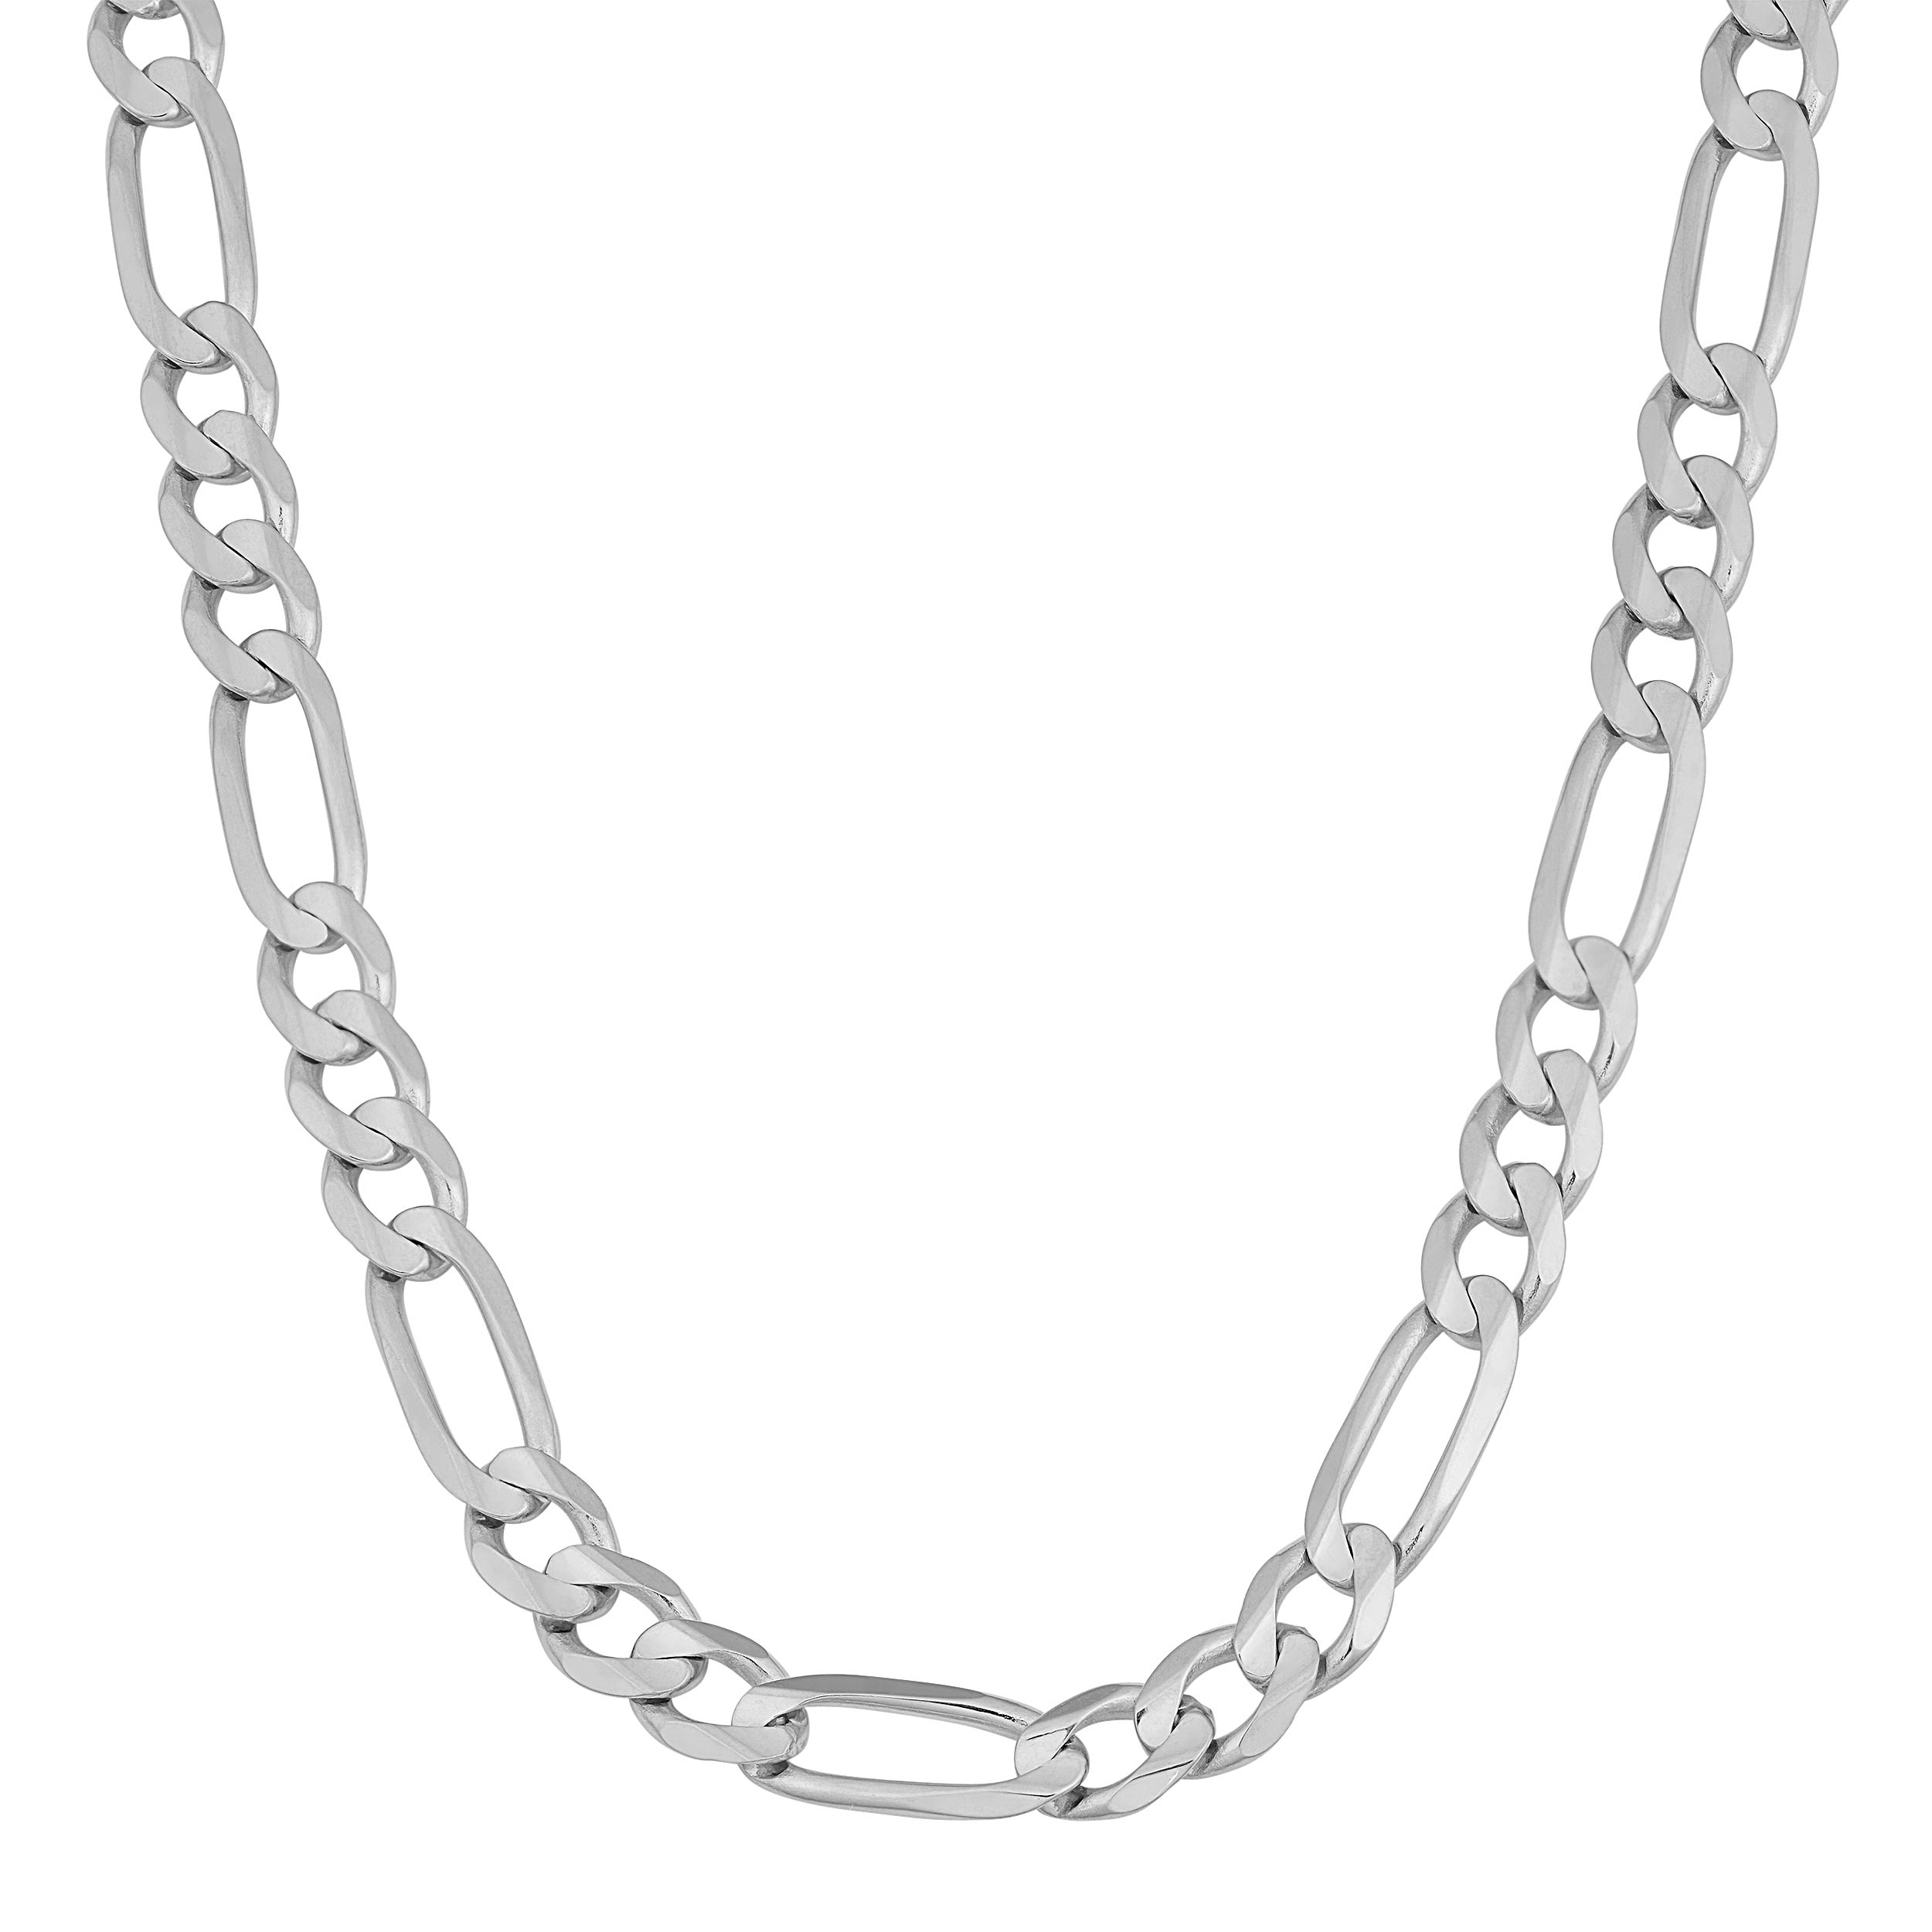 5110cae2bf1c Shop Fremada 14k White Gold 5.8-mm Figaro Link Chain Necklace (20 - 24  inches) - On Sale - Free Shipping Today - Overstock.com - 10051177